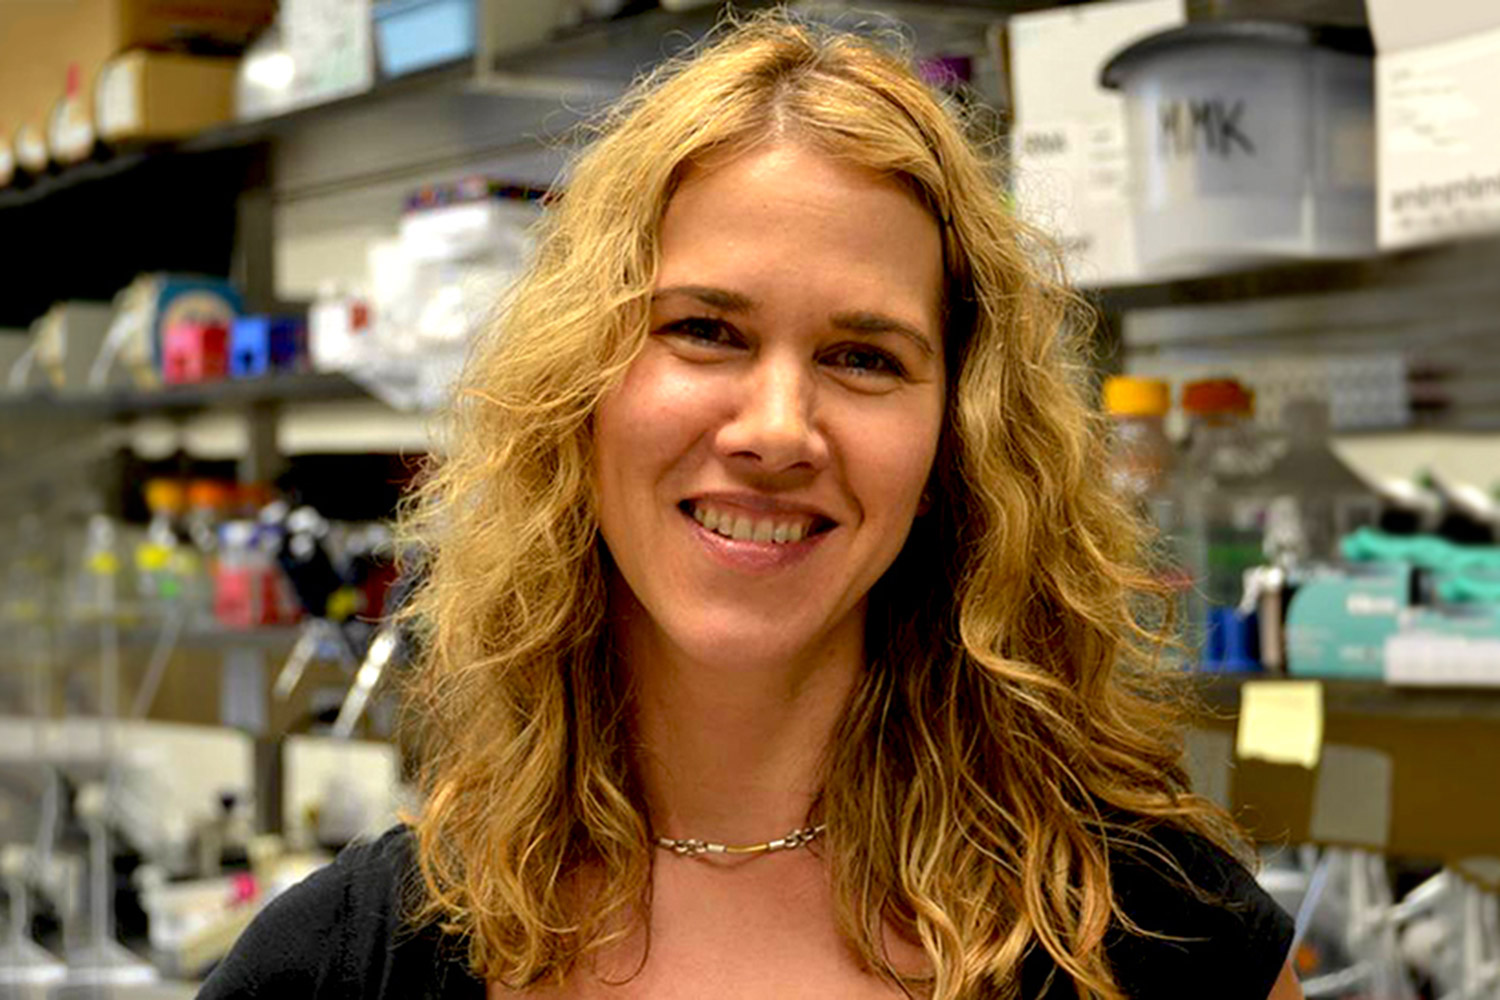 Melissa Kendall credits institutional support and talented grad students for helping her win the American Society for Microbiology's Merck Irving S. Sigal Memorial Award.